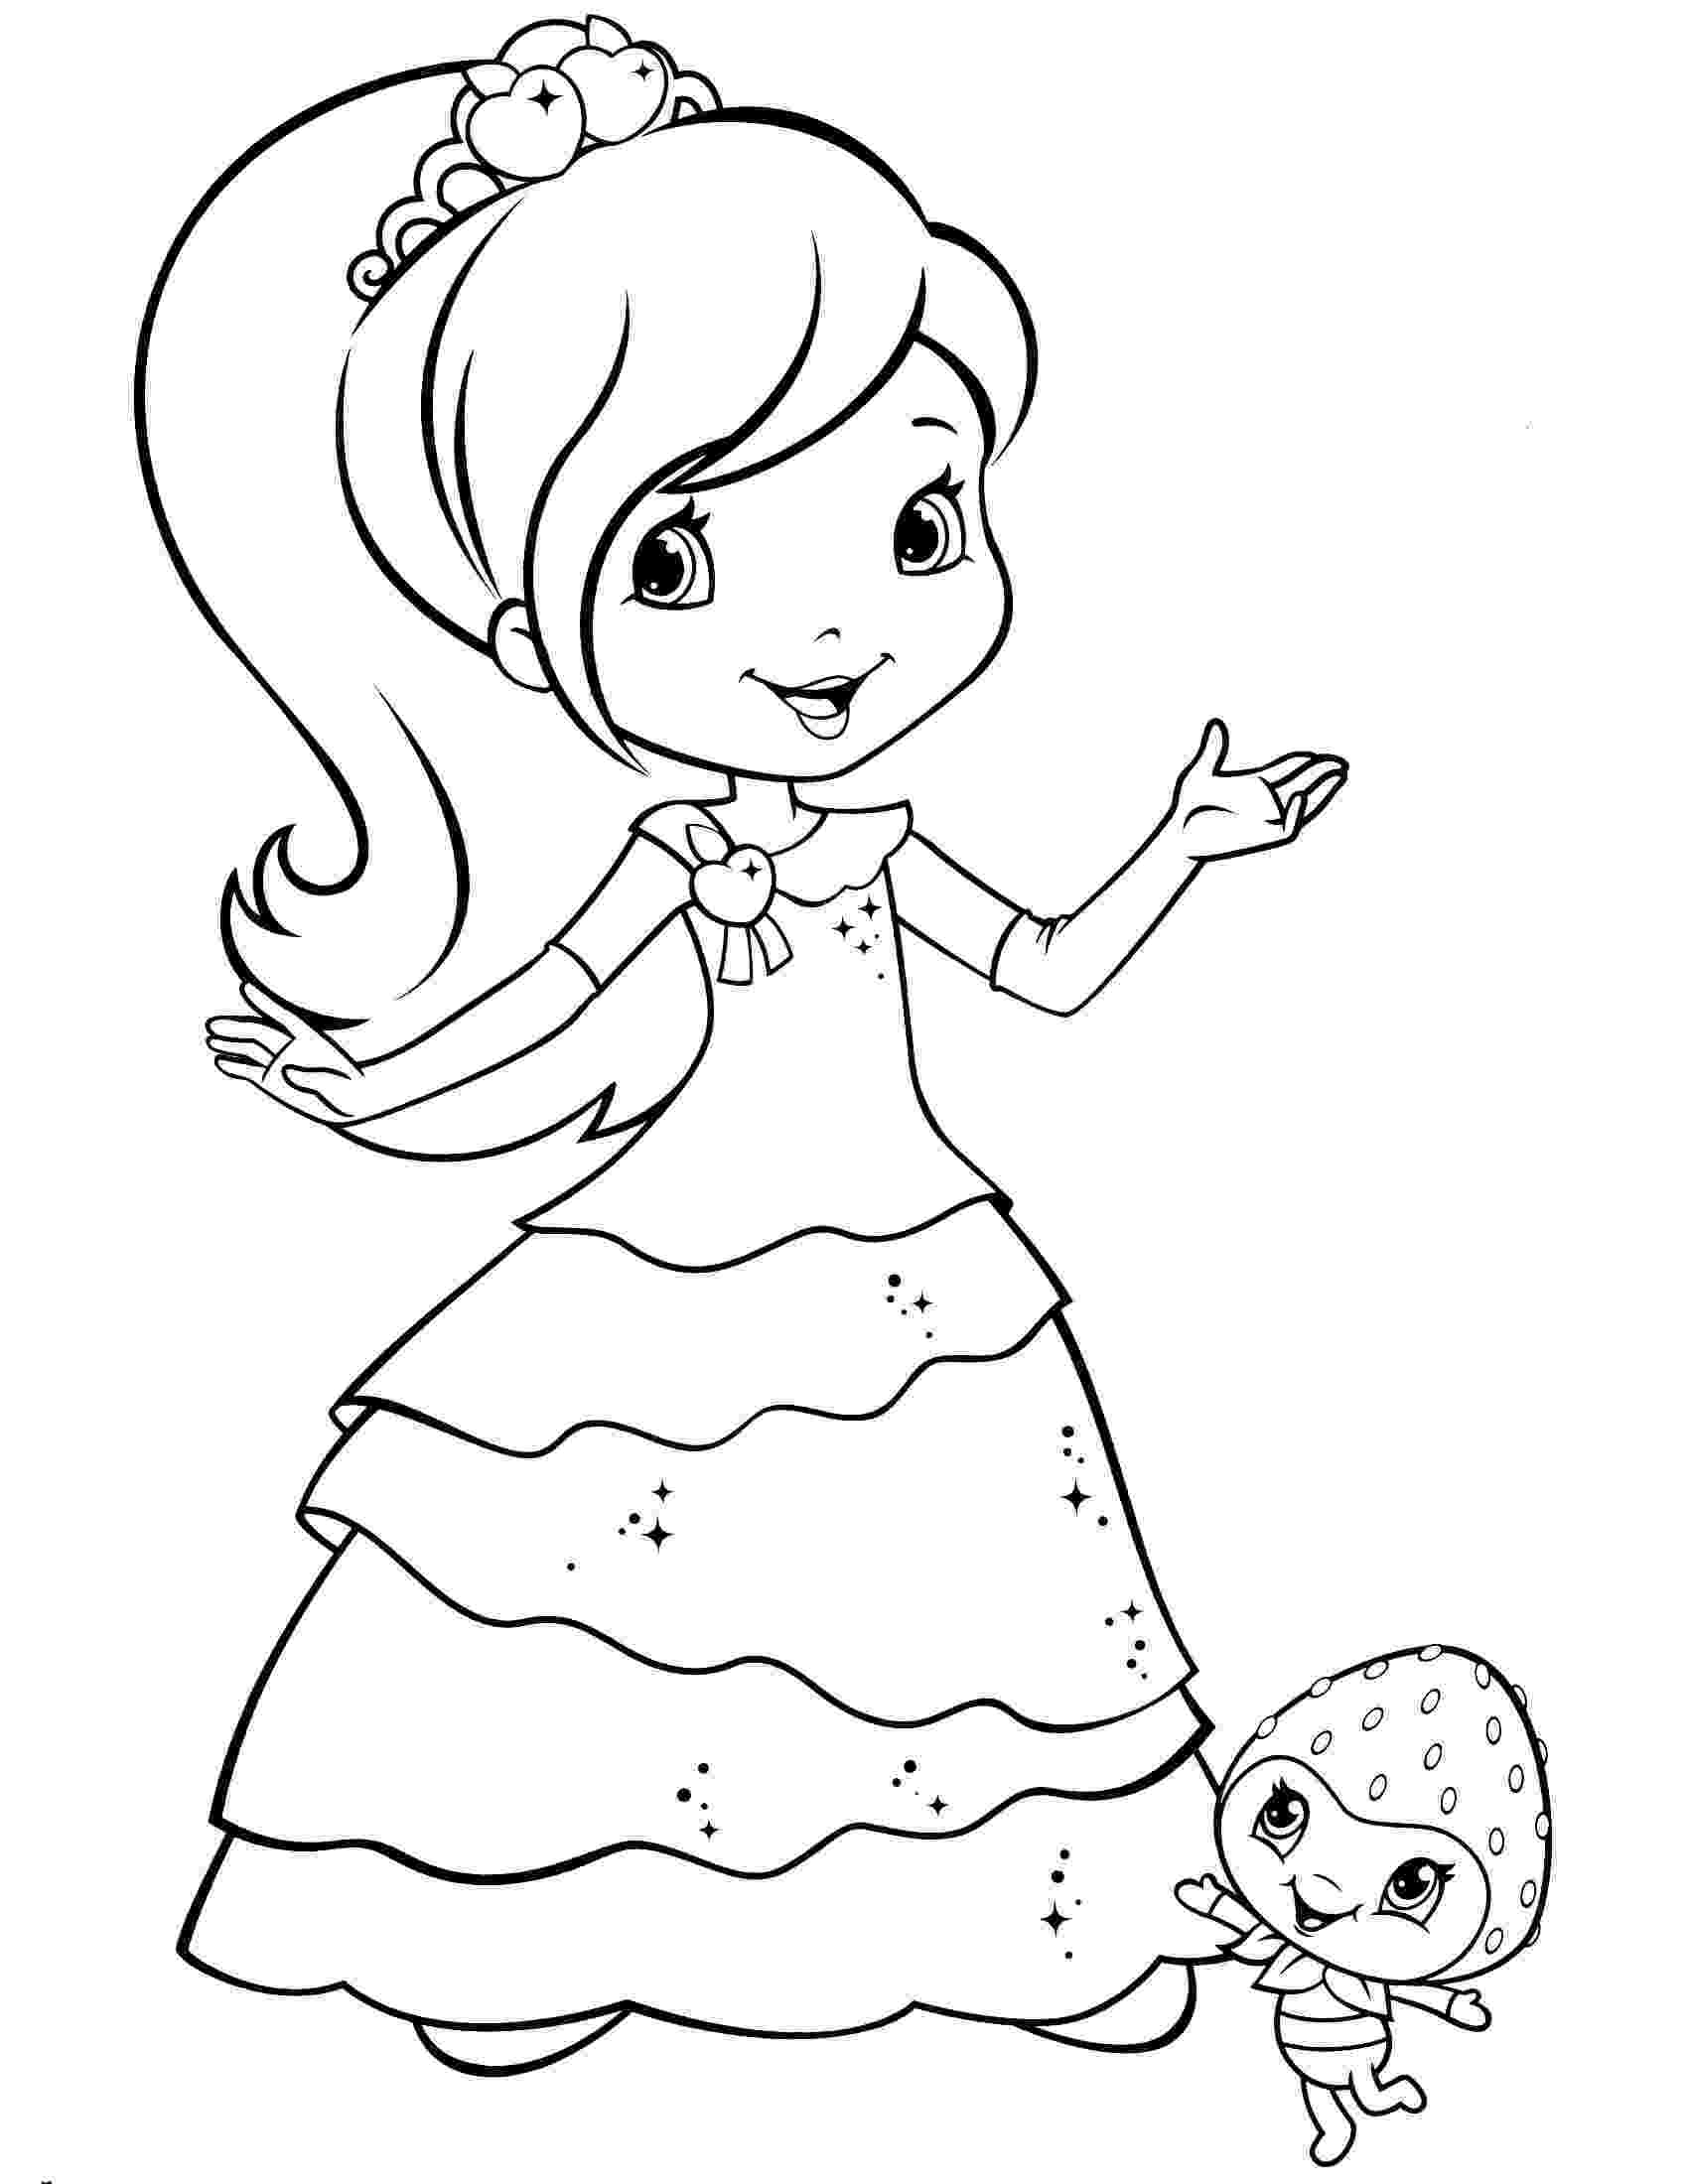 strawberry shortcake coloring pages free strawberry shortcake coloring pages team colors shortcake pages strawberry coloring free